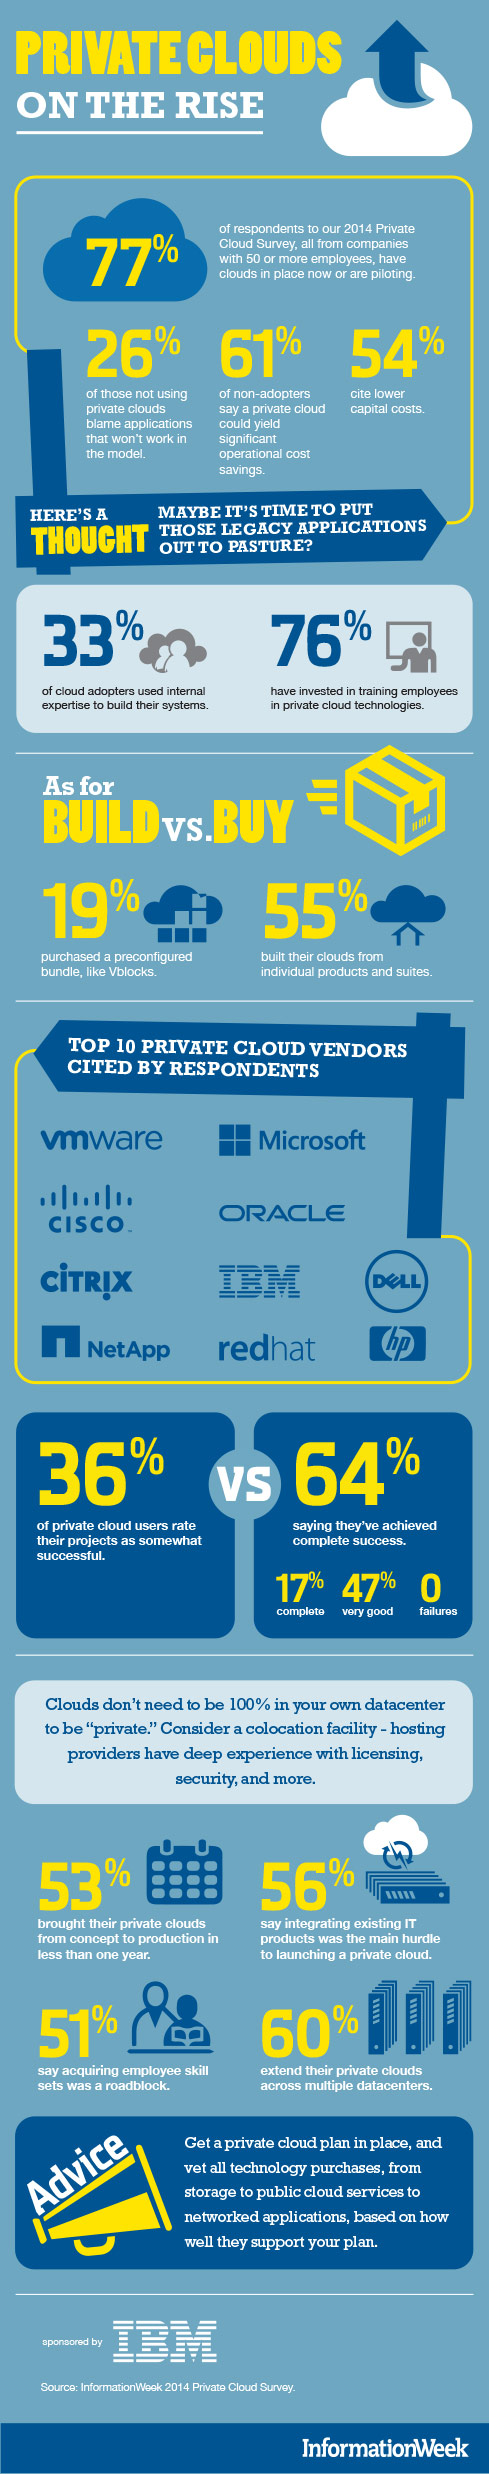 Private Cloud and Hybrid Cloud are Gaining Popularity